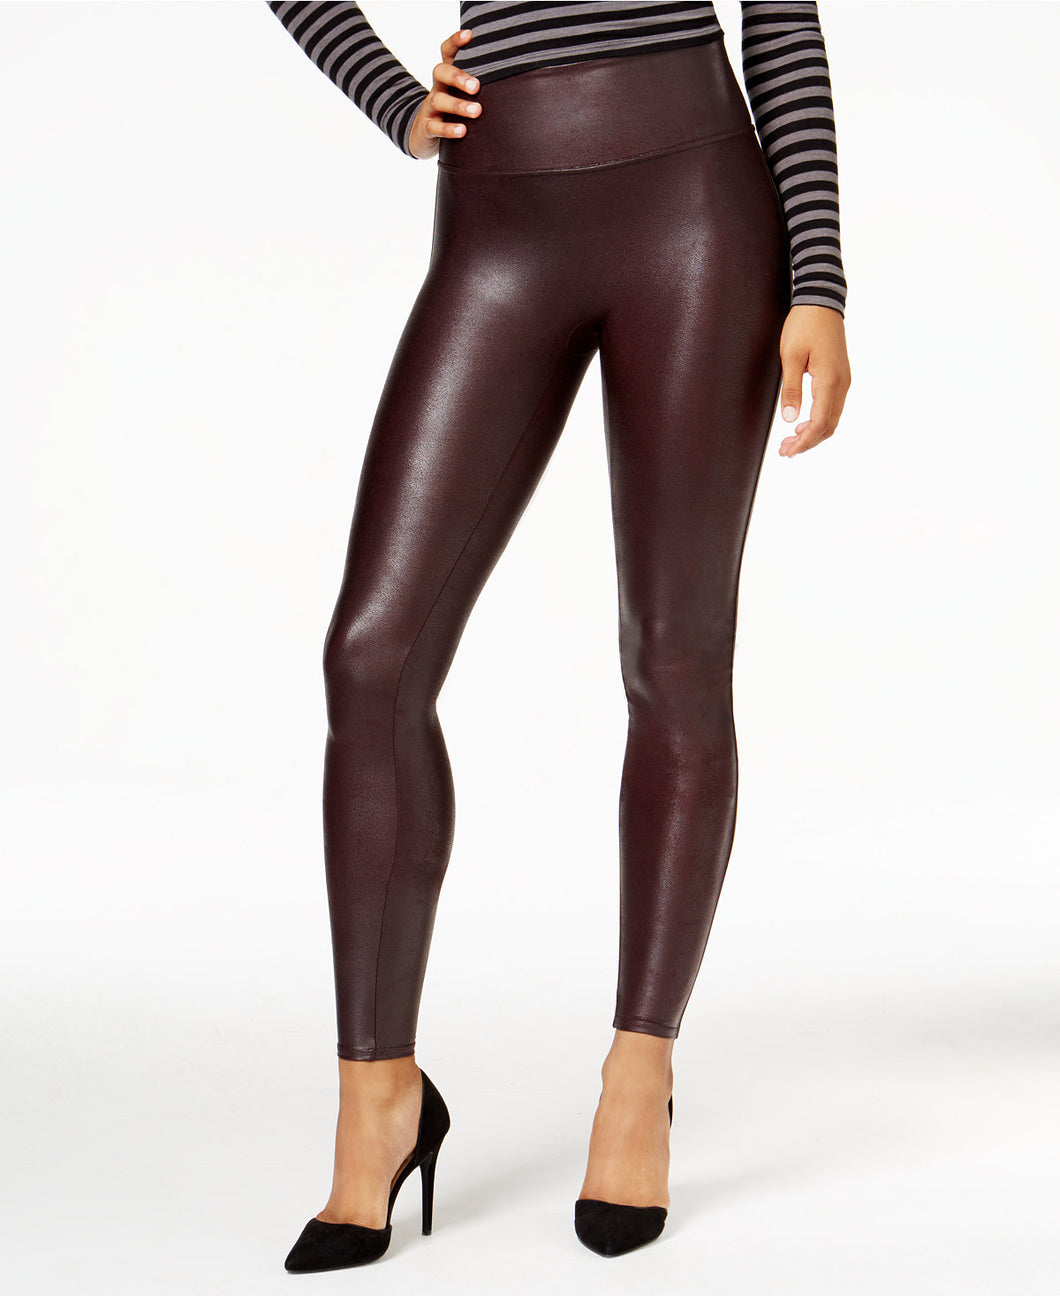 SPANX Burgundy Faux Leather Leggings